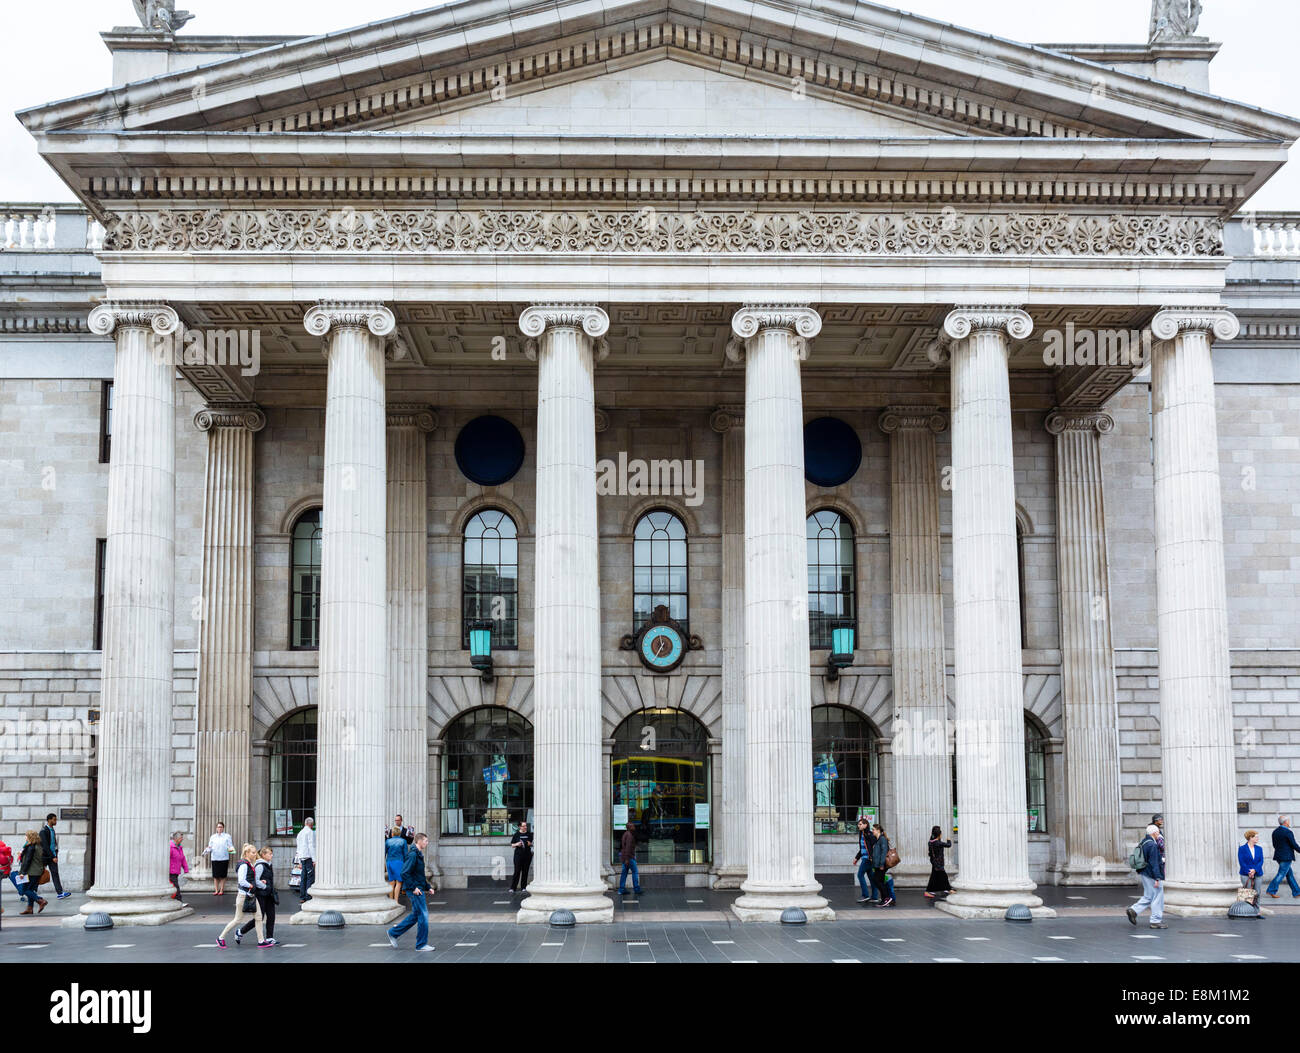 General Post Office on O'Connell Street, republican headquarters during Easter Uprising of 1916, Dublin, Republic - Stock Image